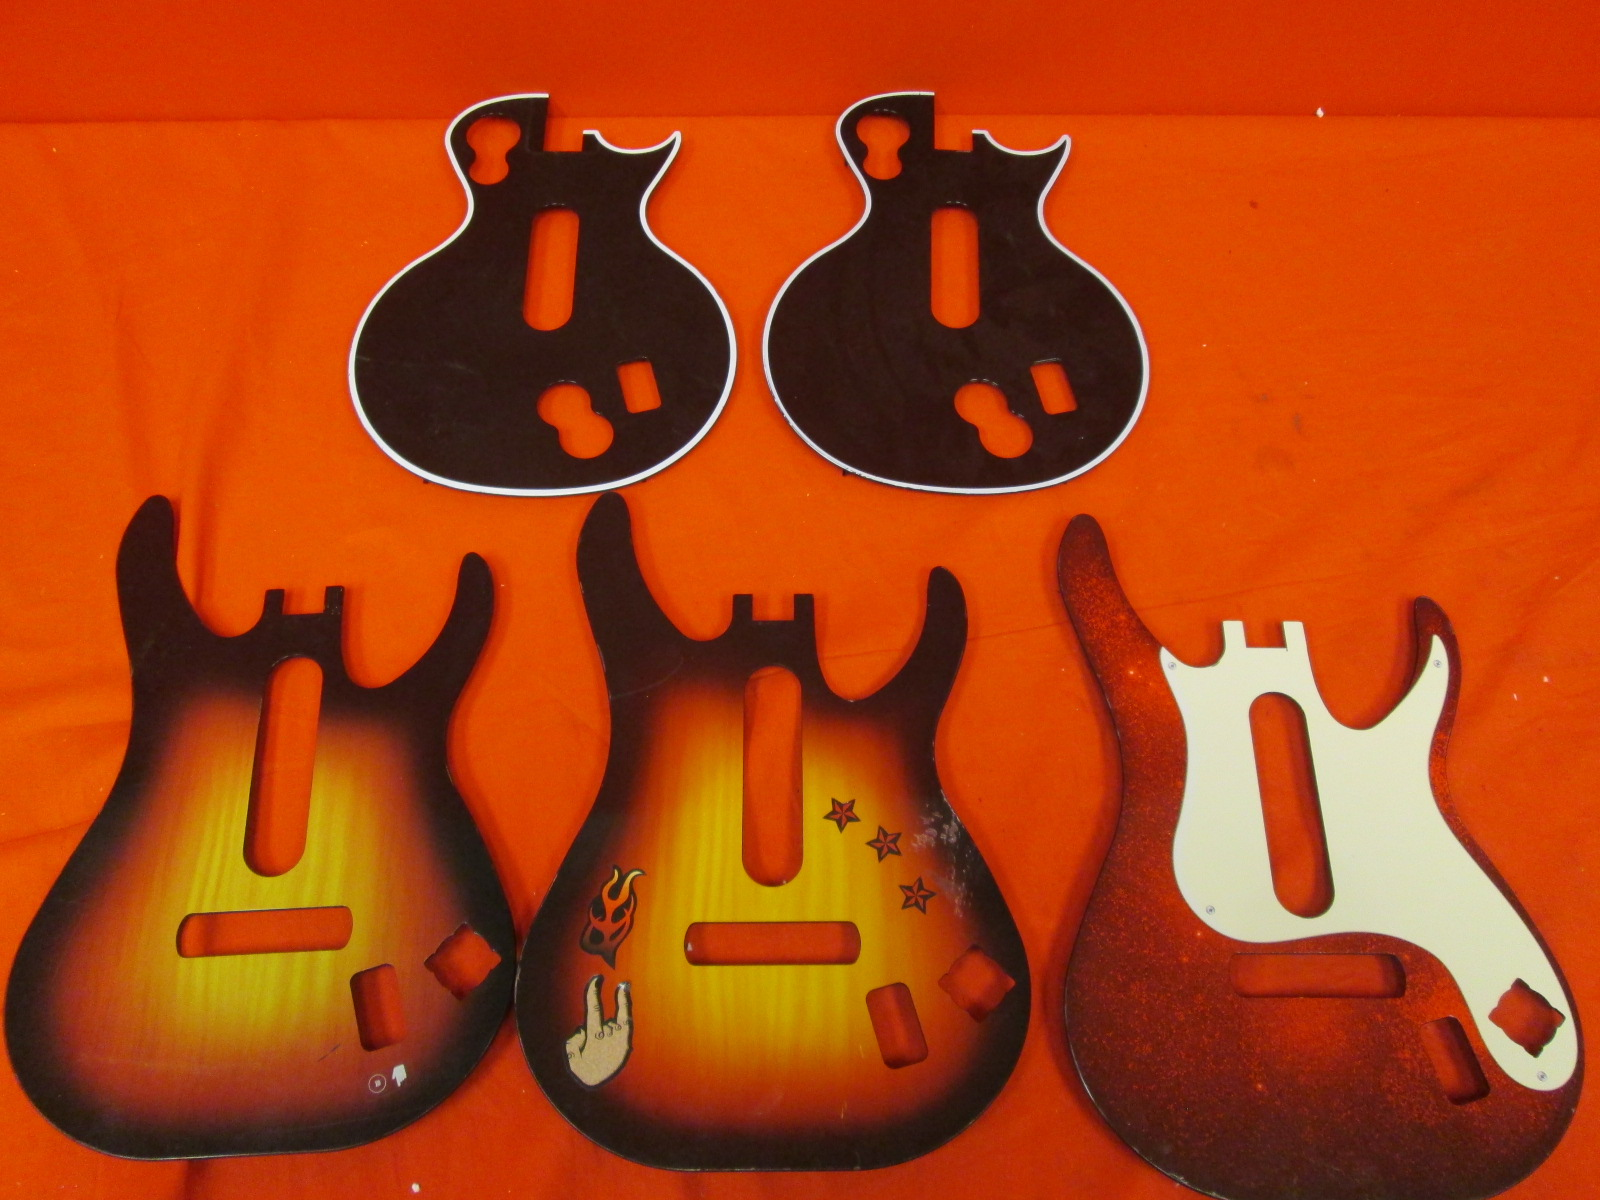 Lot Of 5 Guitar Hero Face-Plates Xbox 360 And For PlayStation 3